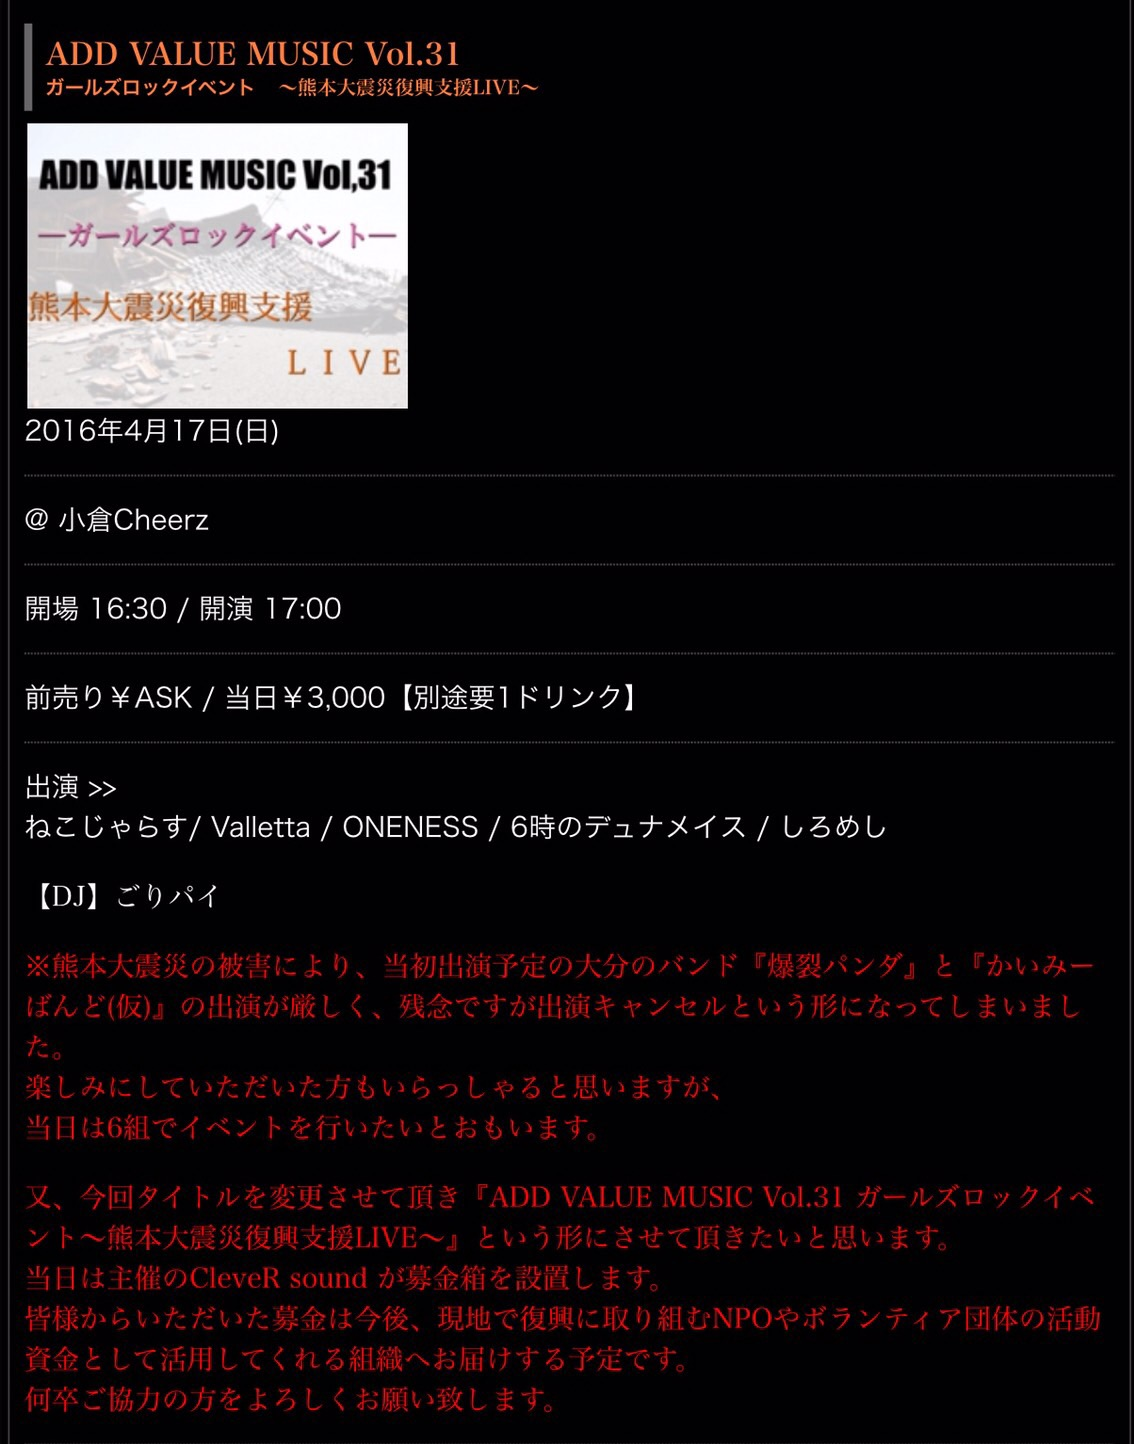 ADD VALUE MUSIC Vol.31